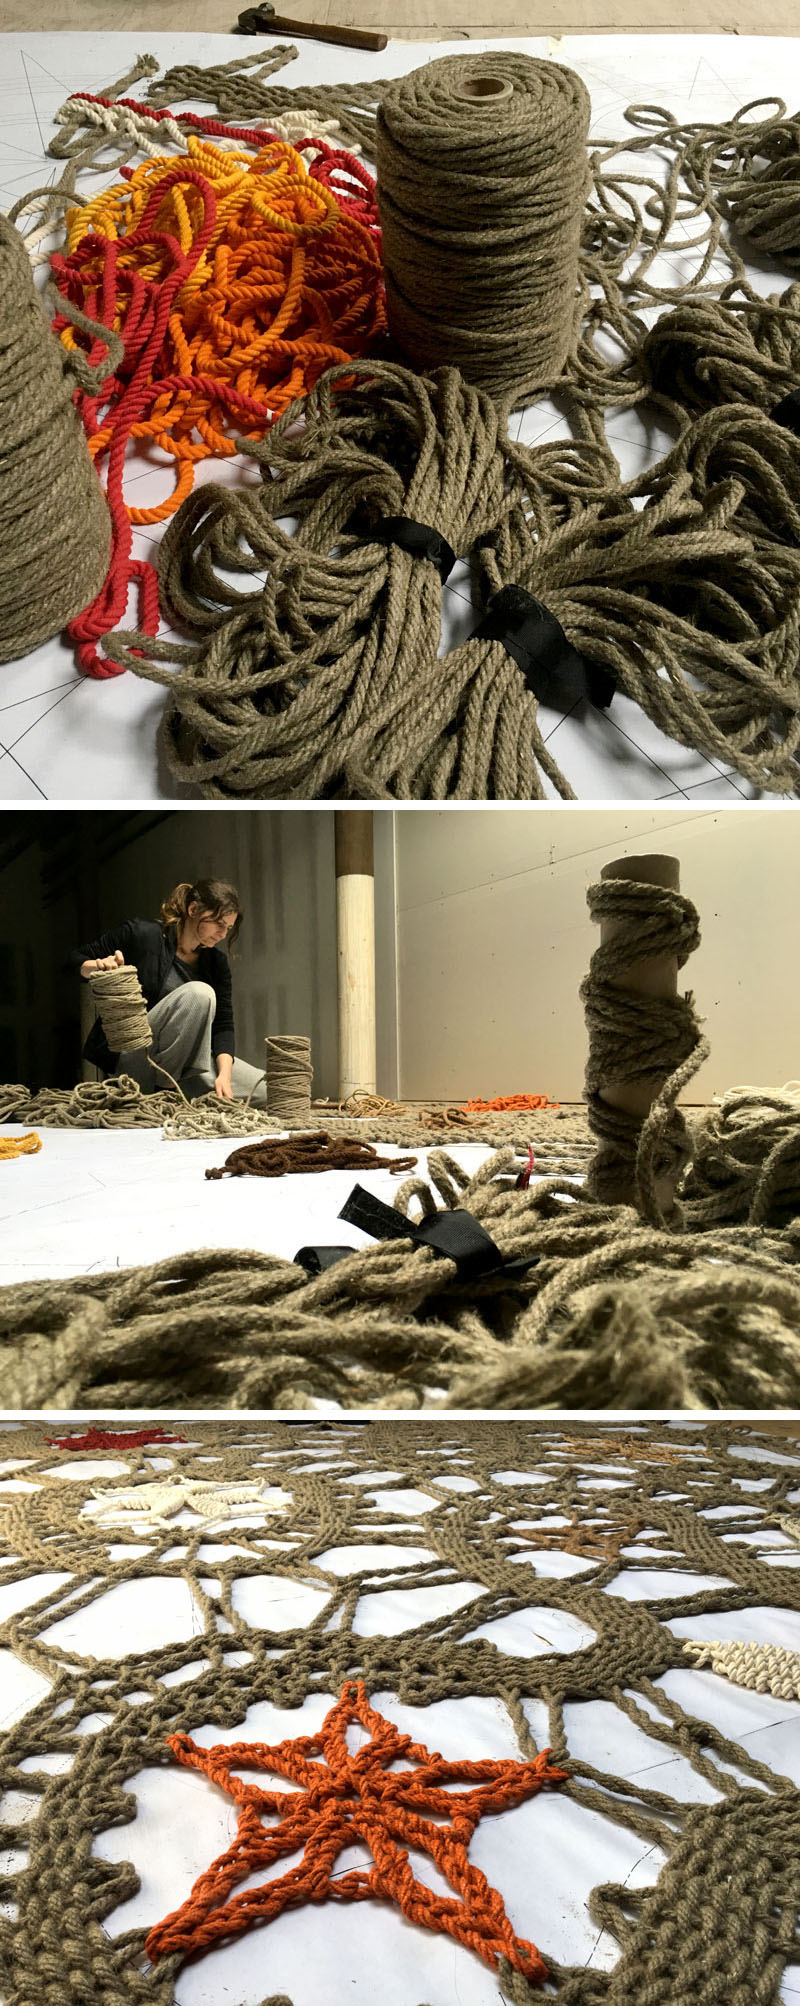 Rope lace artwork Etsy office-3